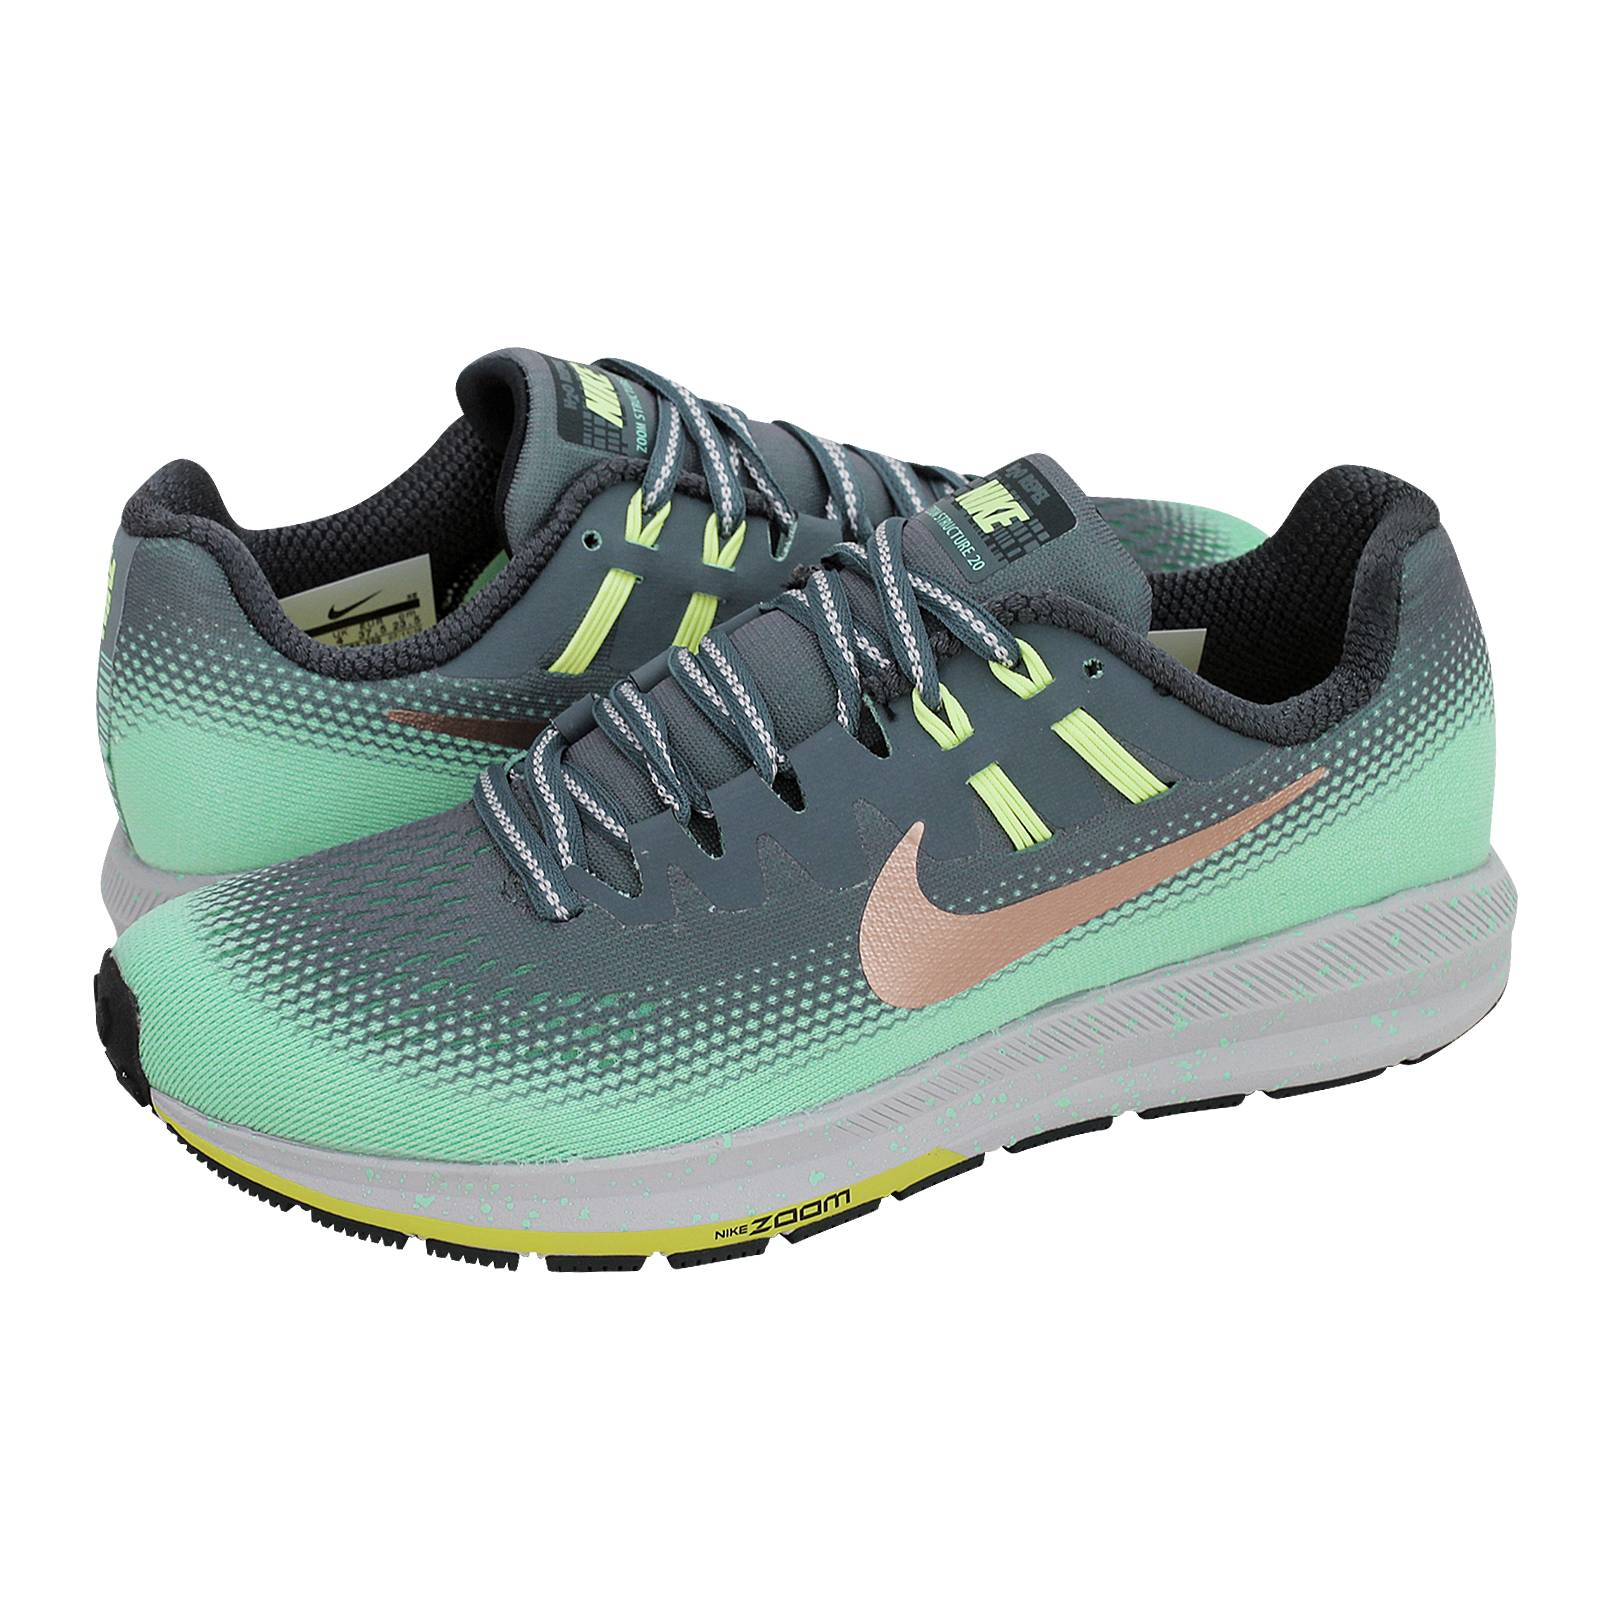 cheap for discount d47e1 cf91d Nike Air Zoom Structure 20 Shield athletic shoes